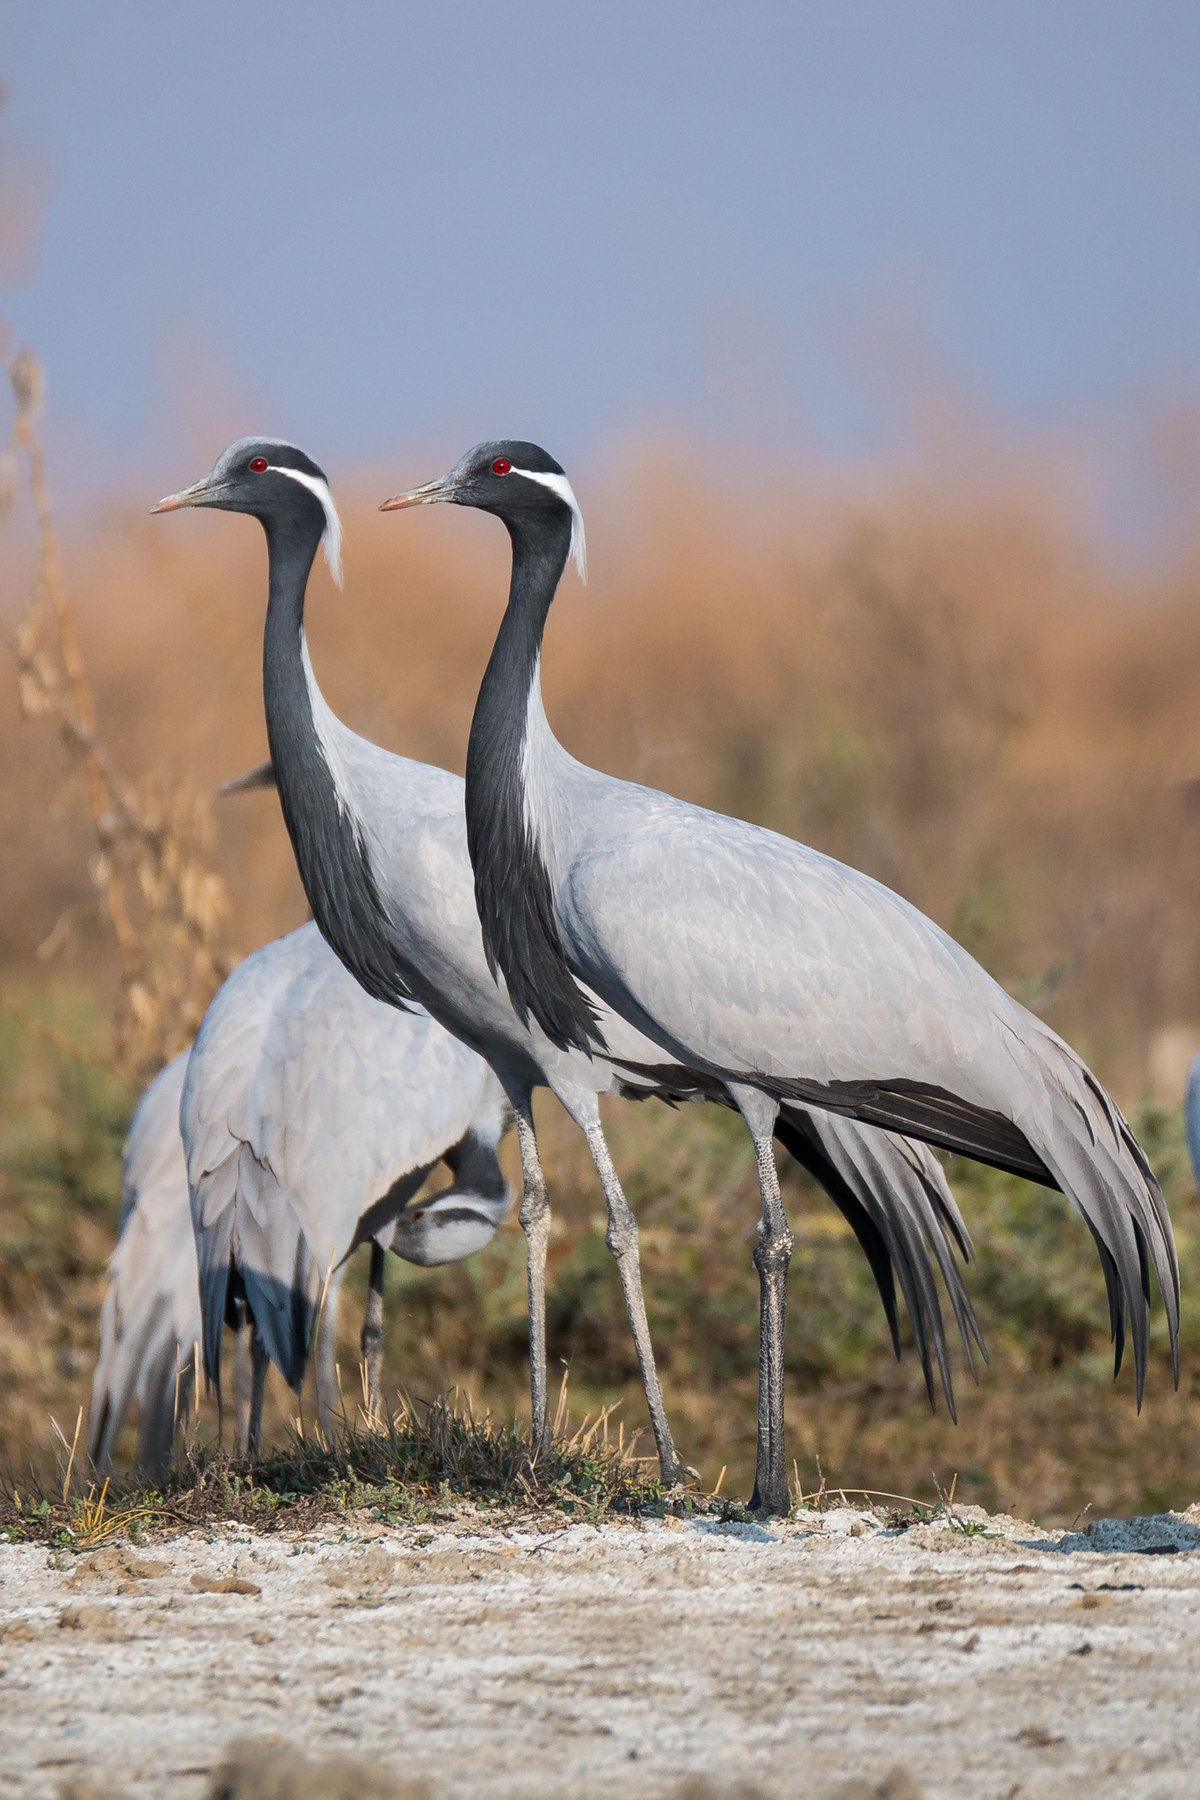 Demoiselle crane wikipedia for The crain